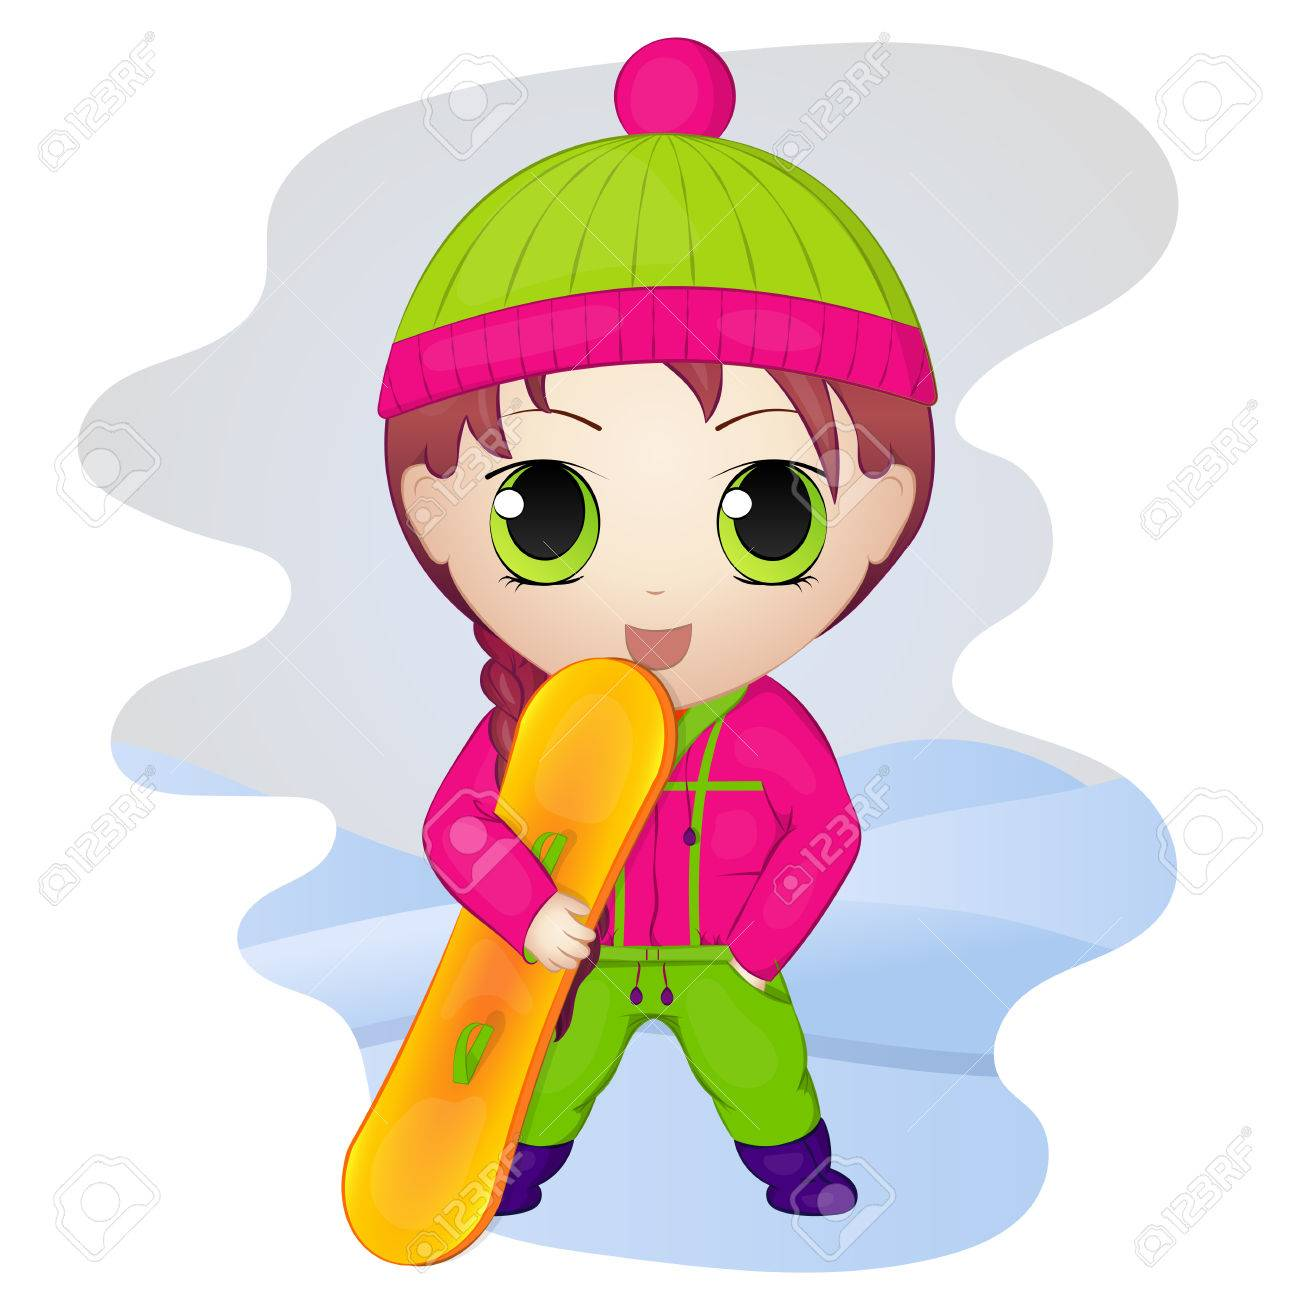 Banque dimages cute chibi anime petite fille avec snowboard style de bande dessinée simple illustration vectorielle collection de nouvel an